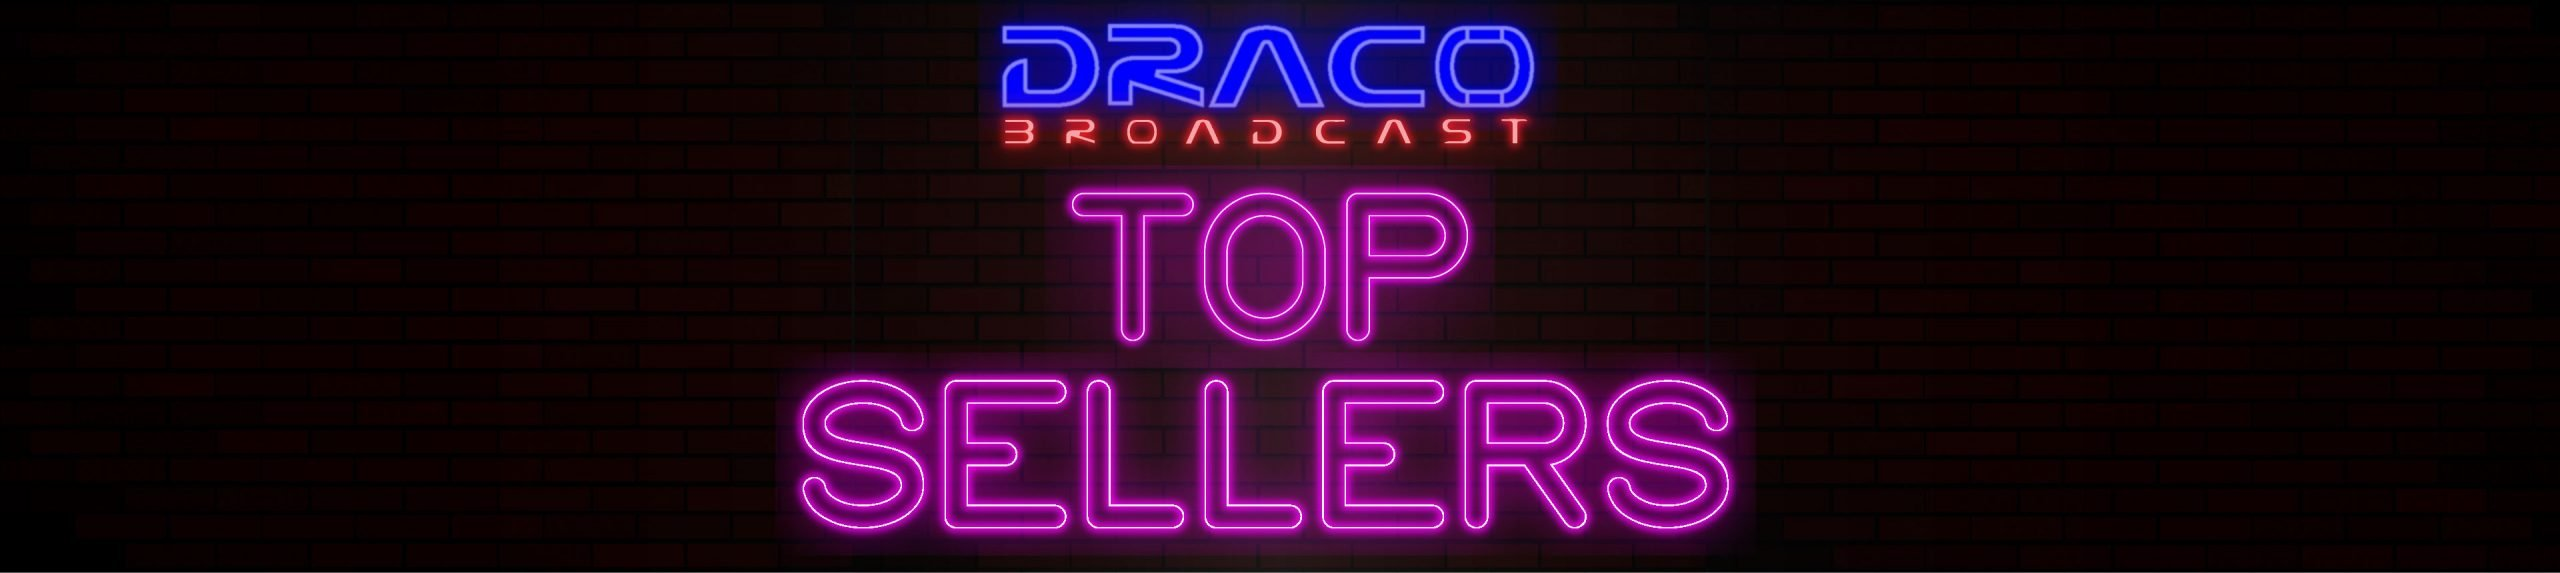 Draco top selling LED video lights, LED video light kits, teleprompters, tripods, waterproof equipment cases.